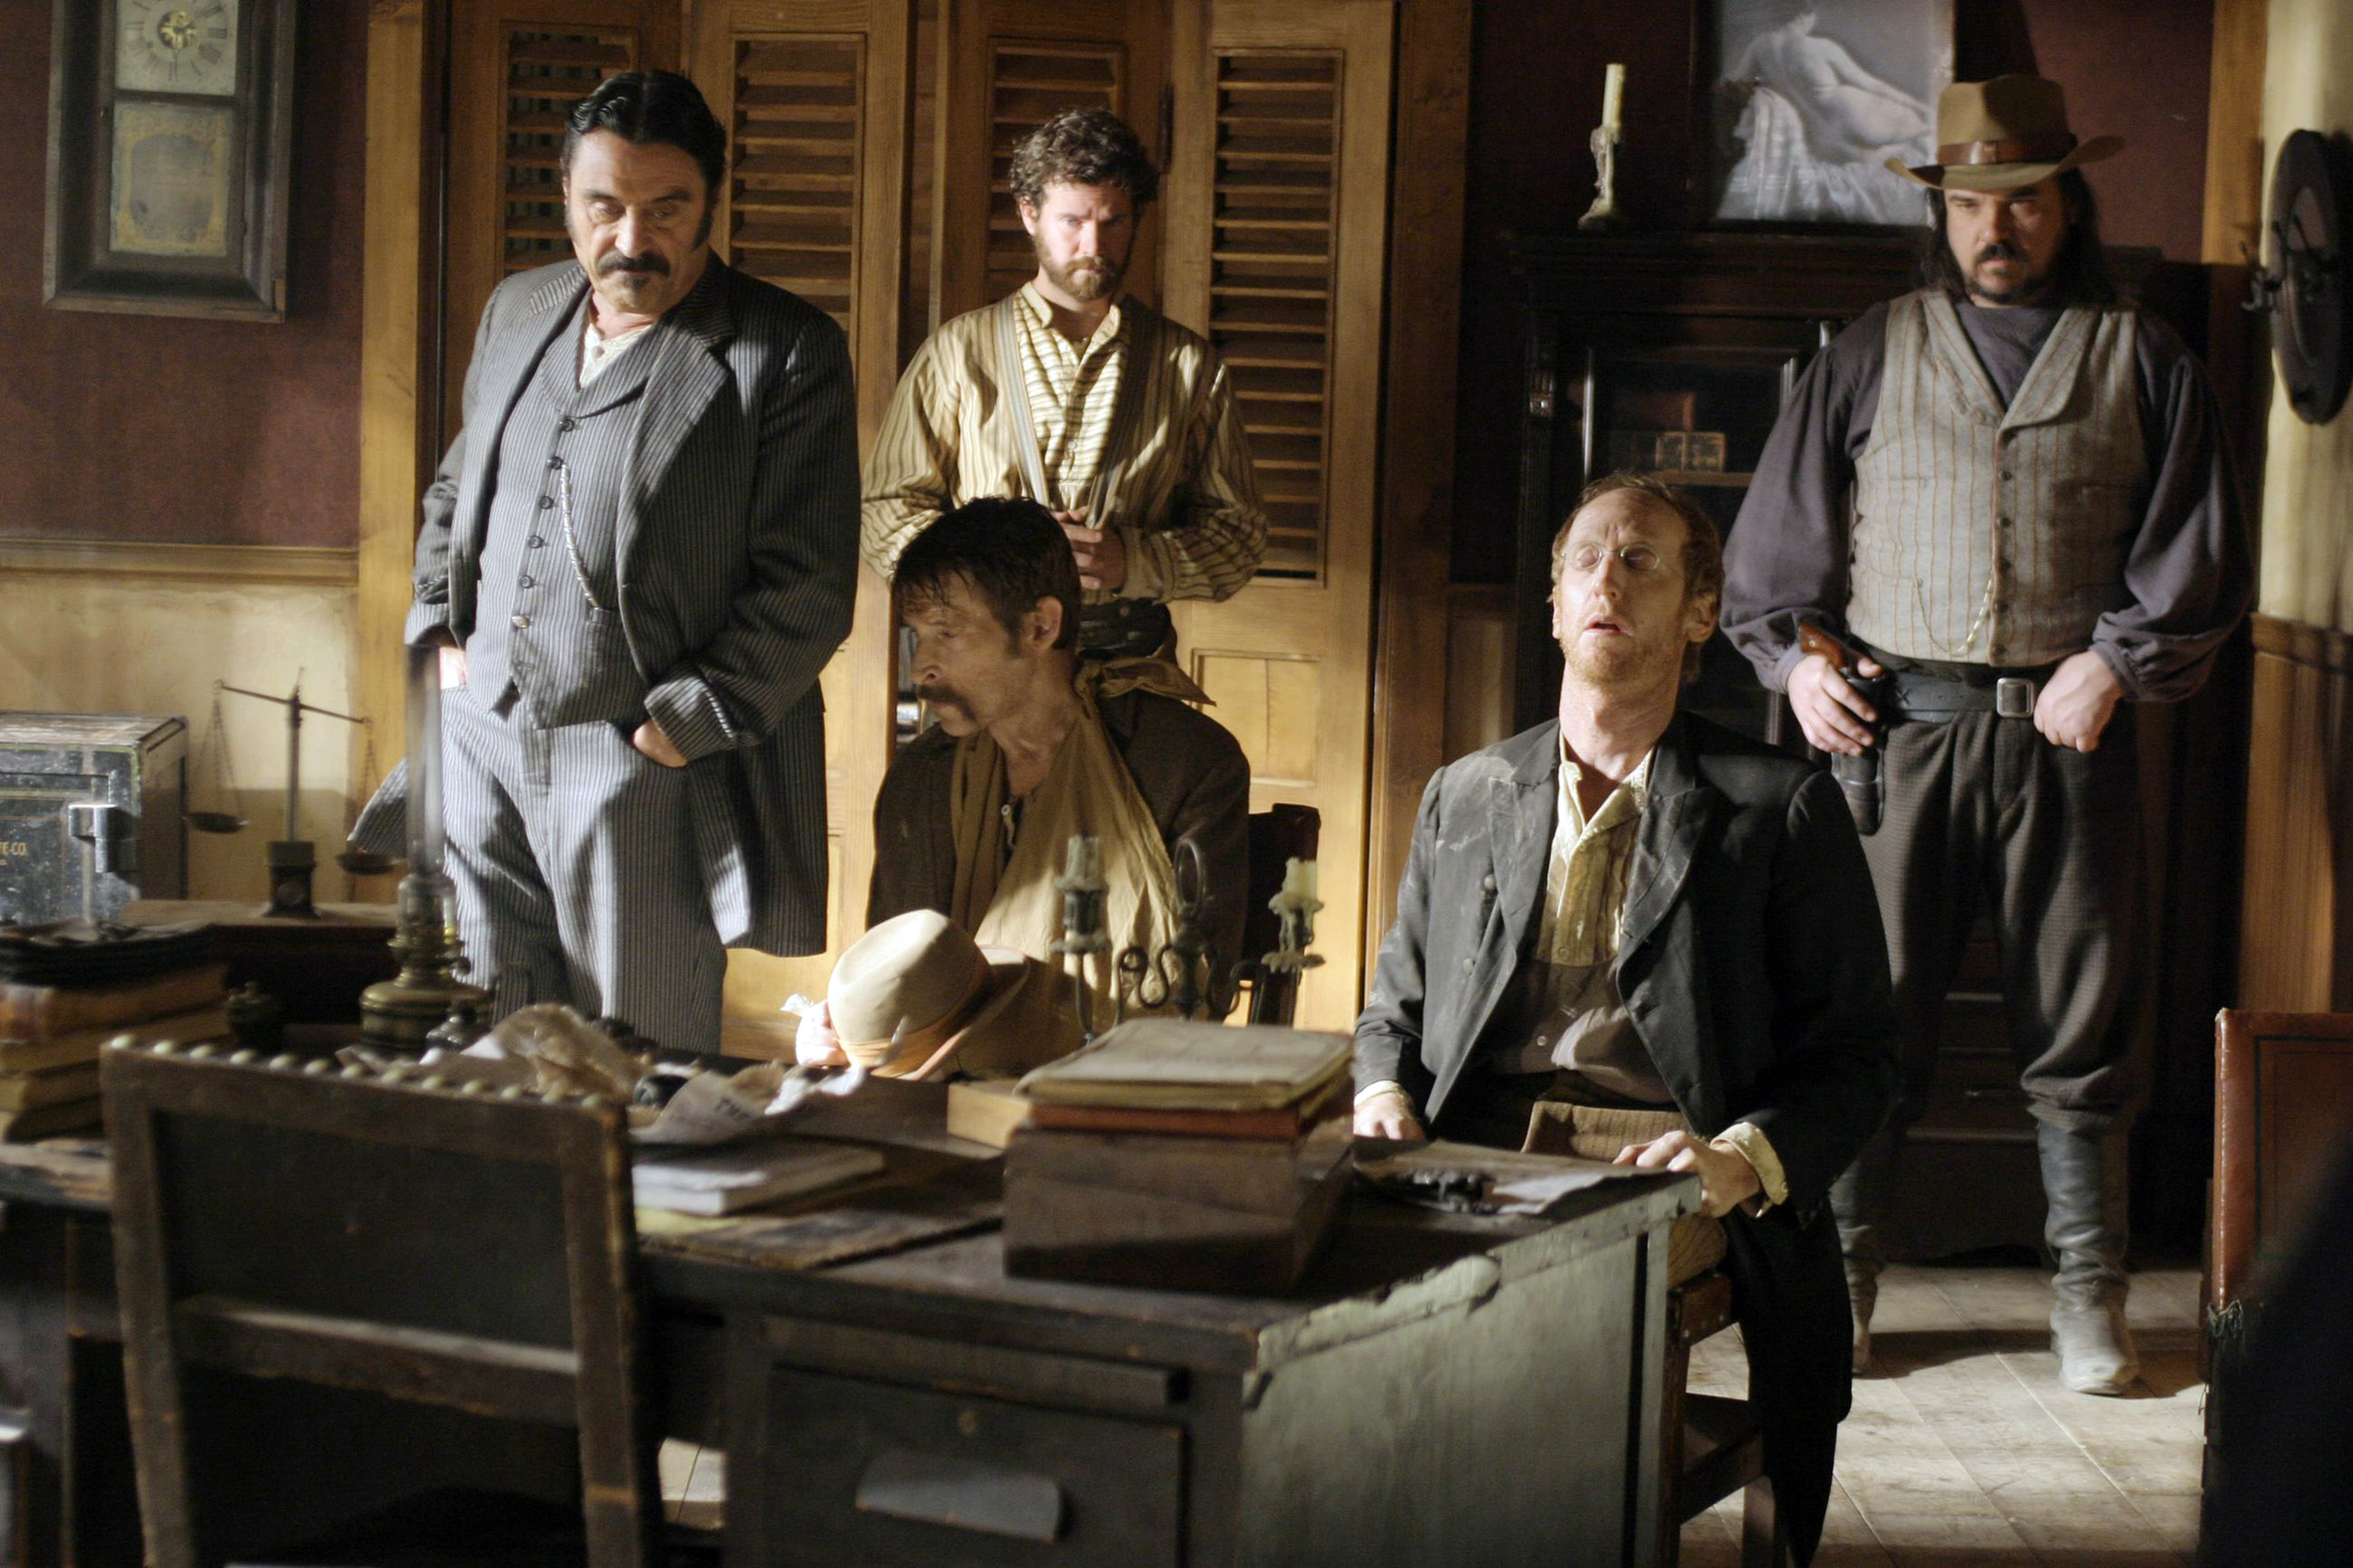 deadwood definitive photo gallery 03 season 1 episodes 9